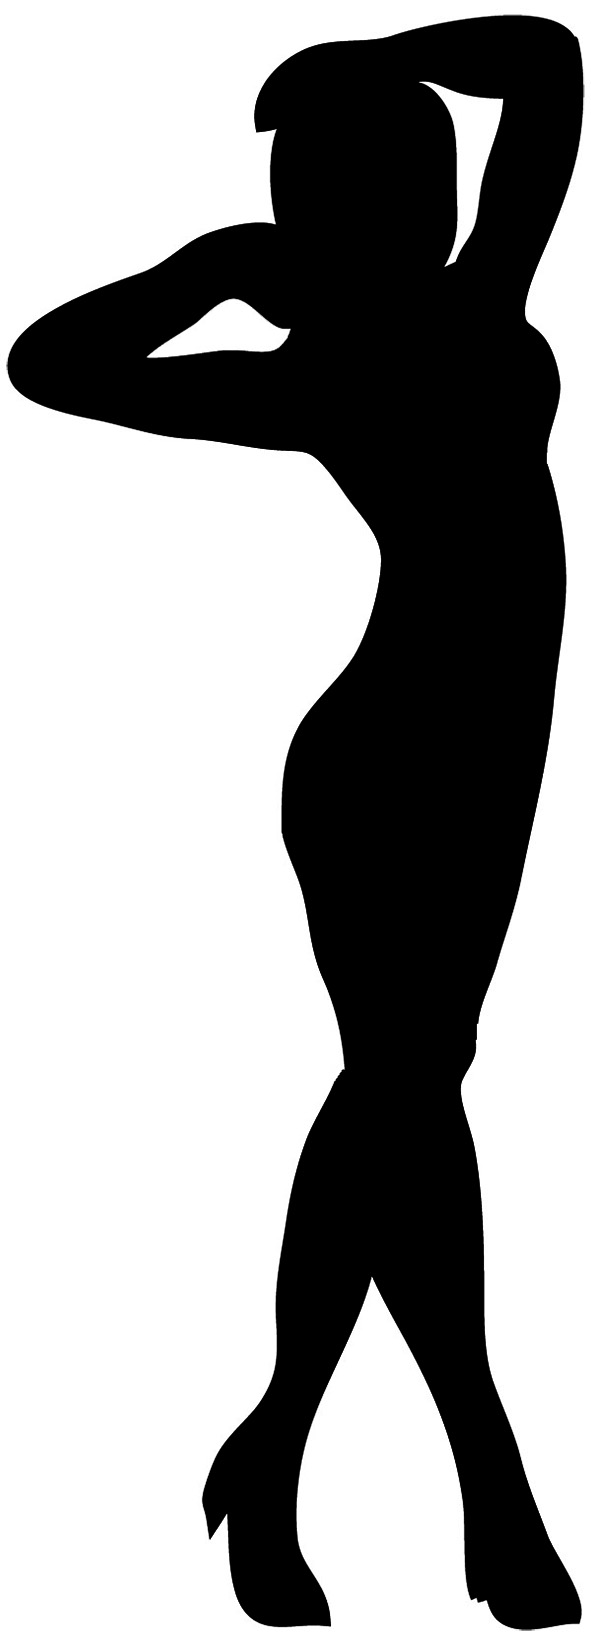 Female clipart. Silhouette at getdrawings com